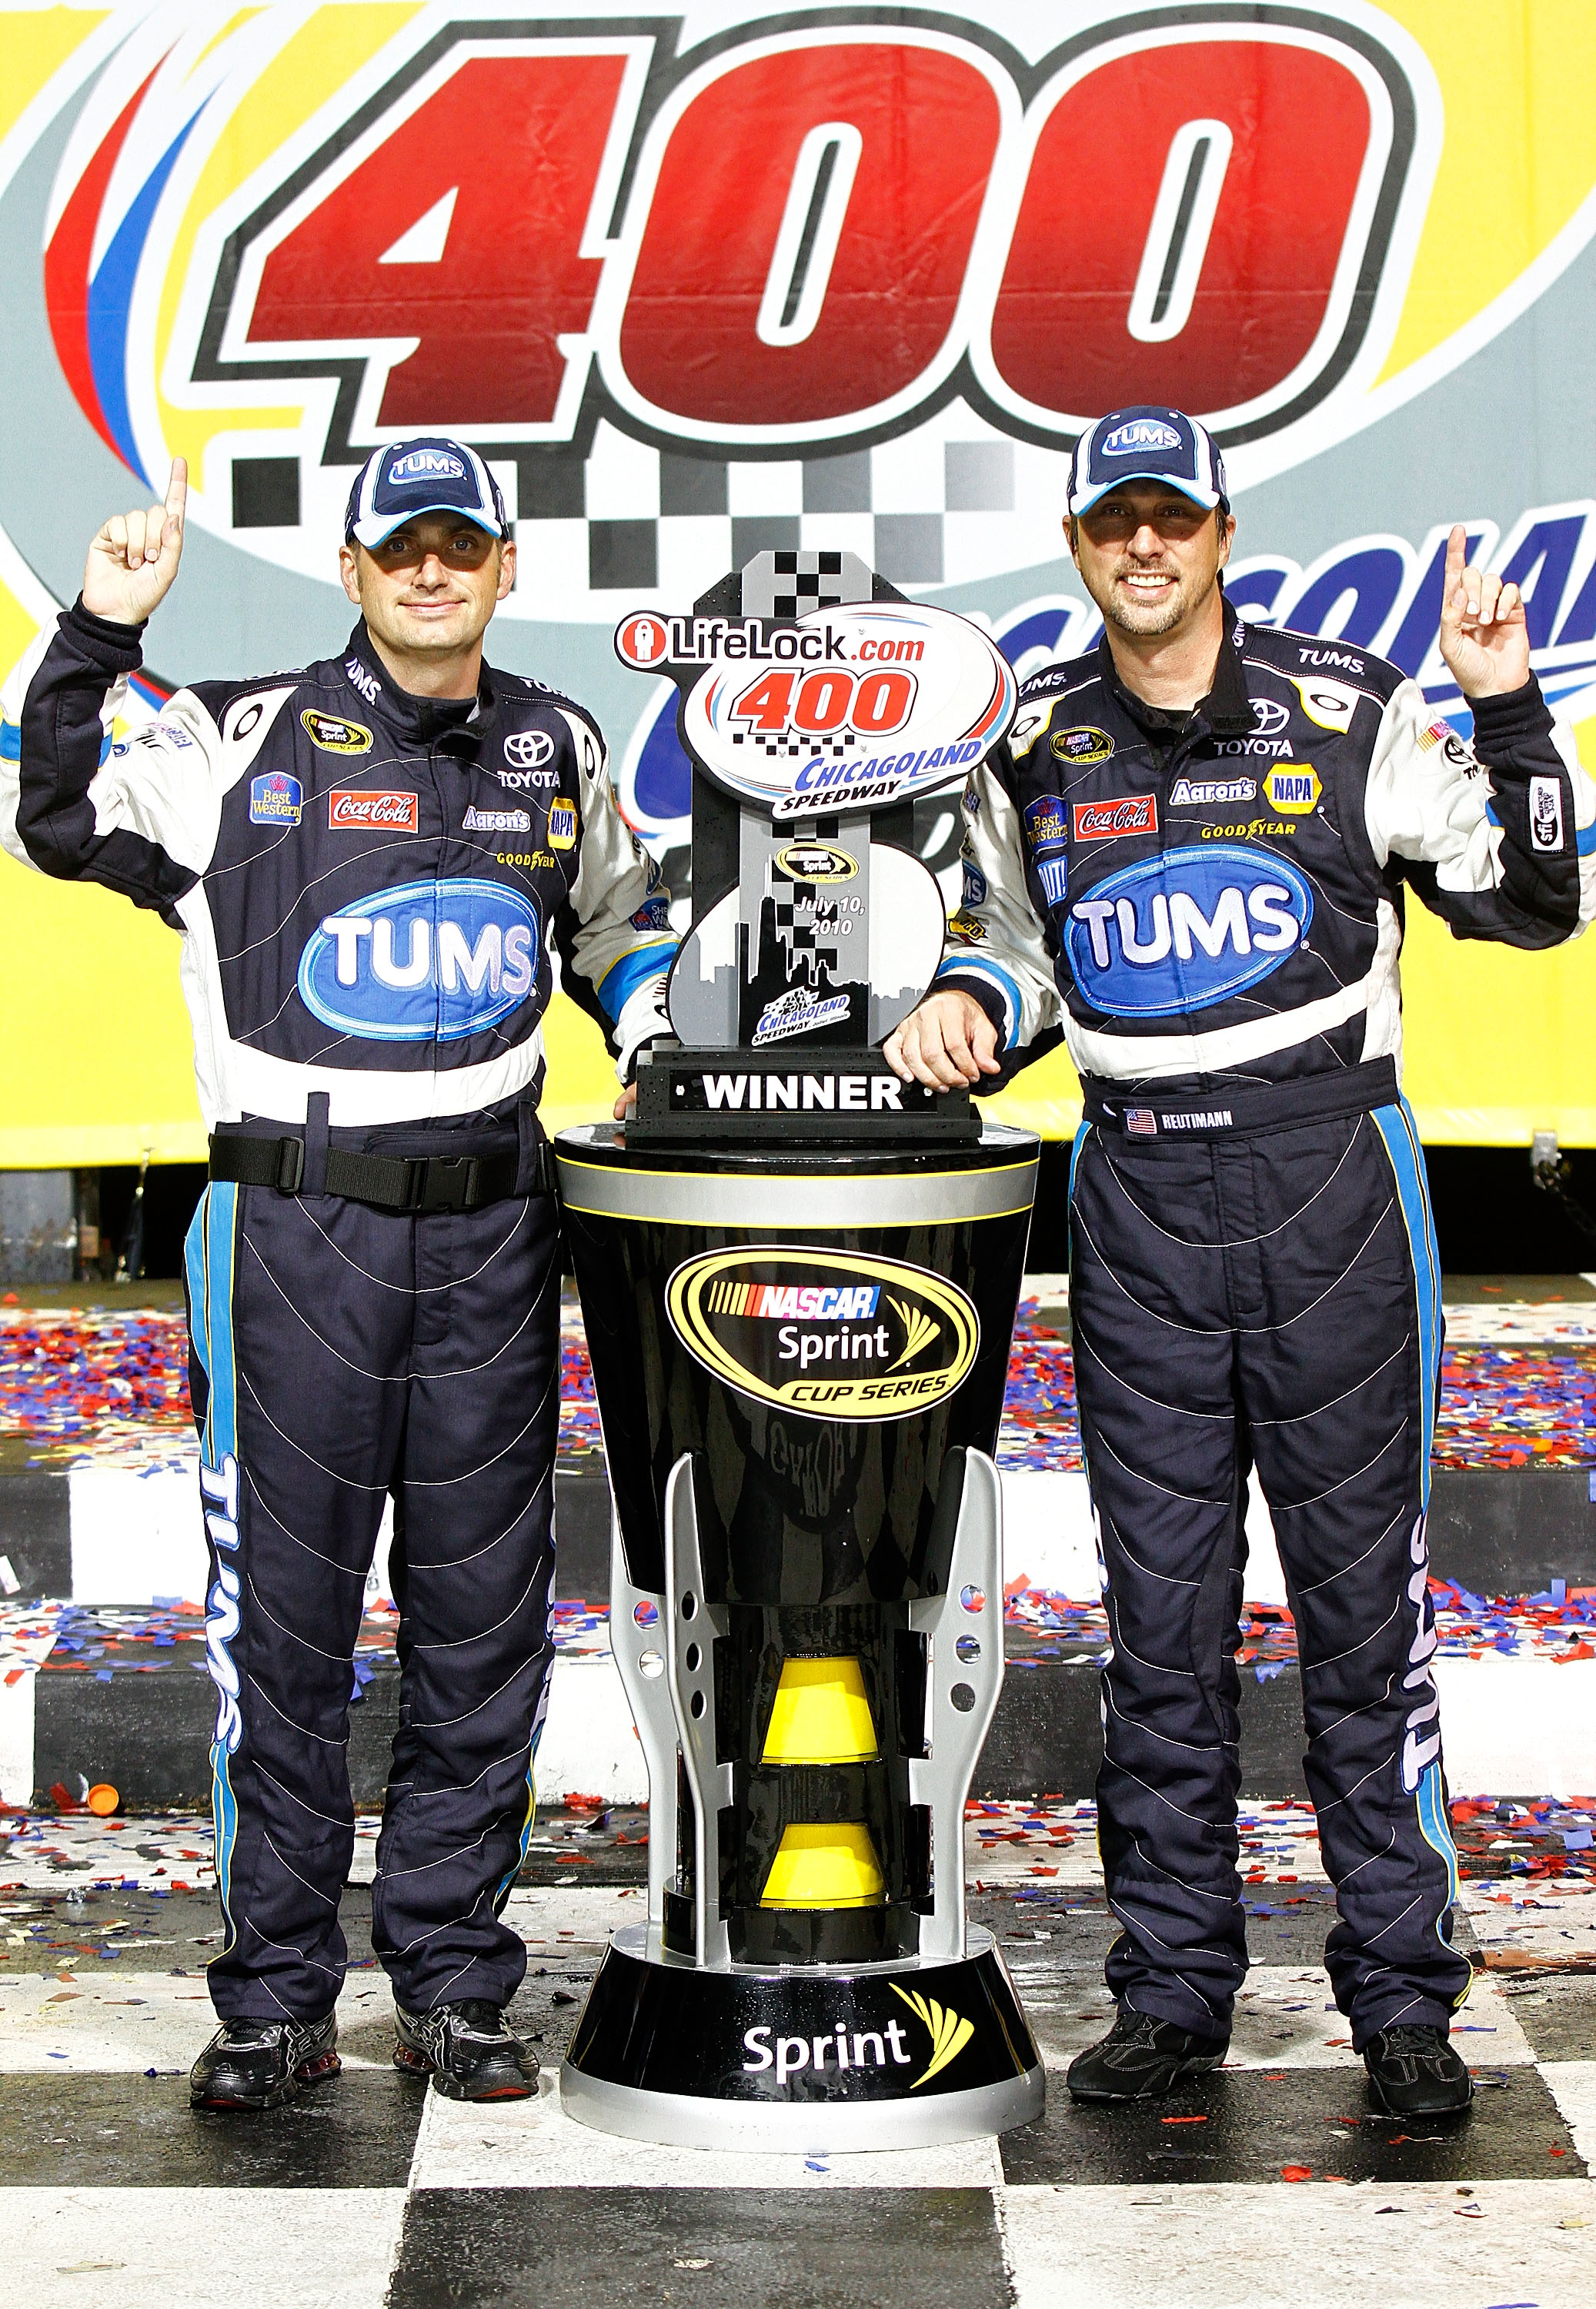 David Reutimann has two career wins but he has good stuff with MWR.